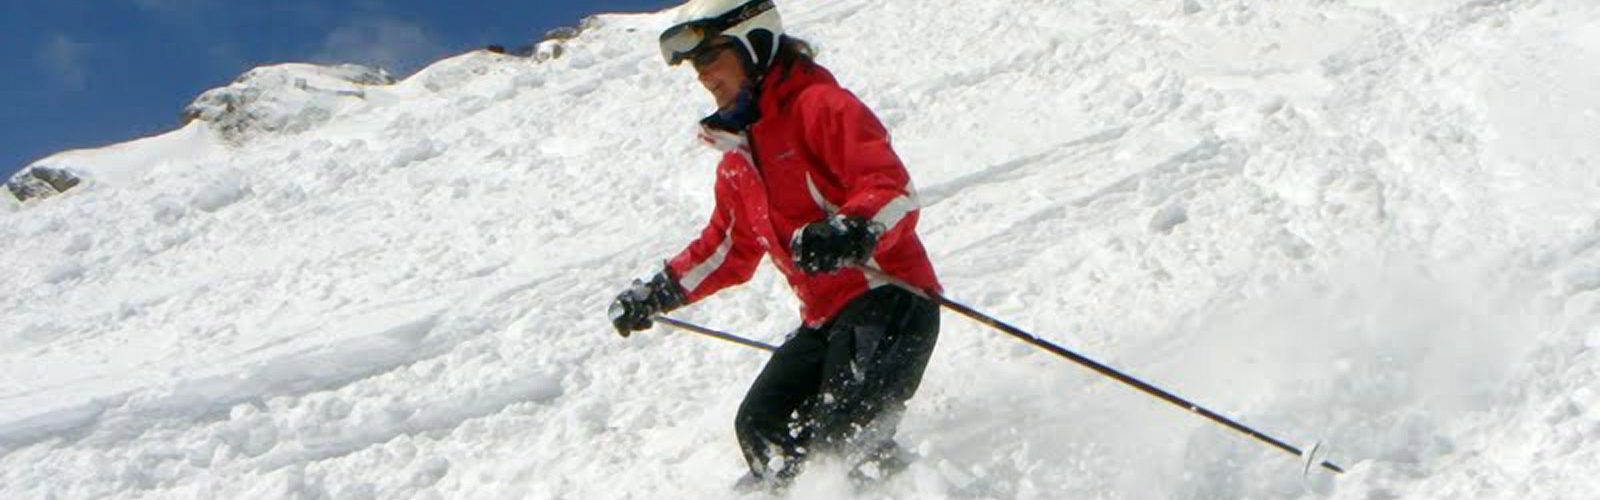 Tracy Skiing downhill Morzine